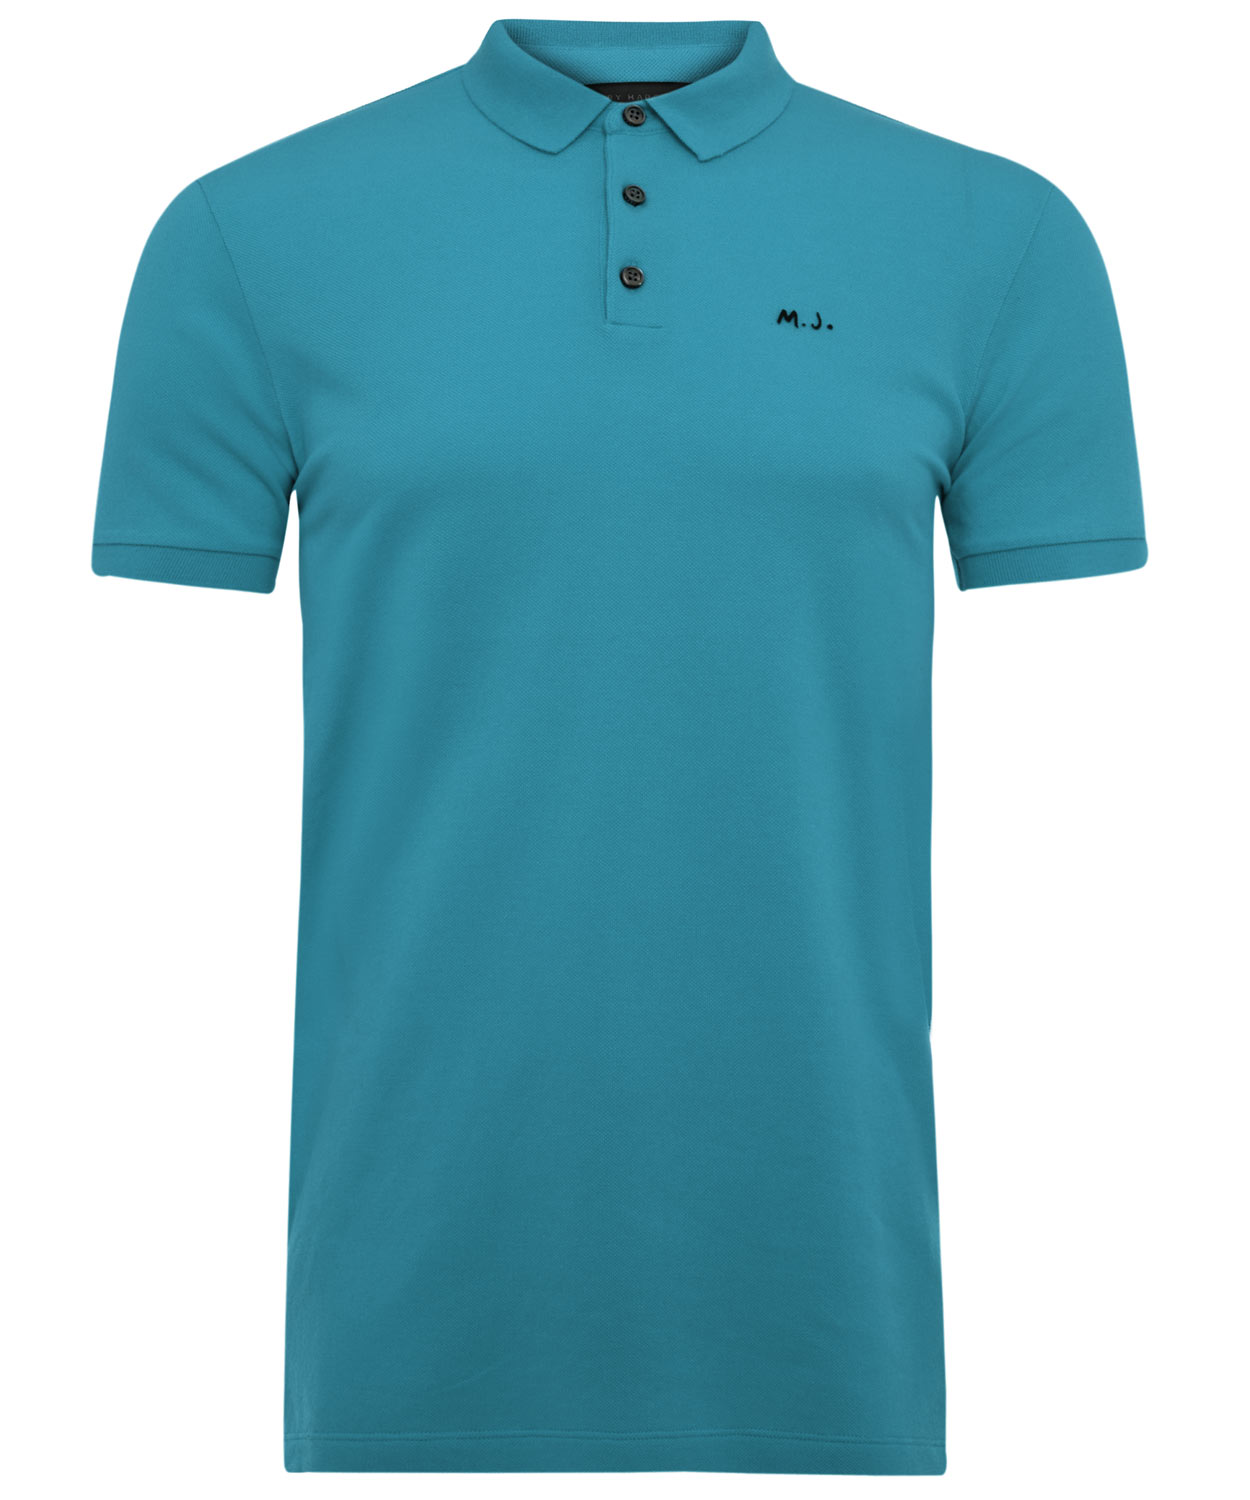 Marc by marc jacobs teal blue mj polo shirt in blue for for Mens teal polo shirt